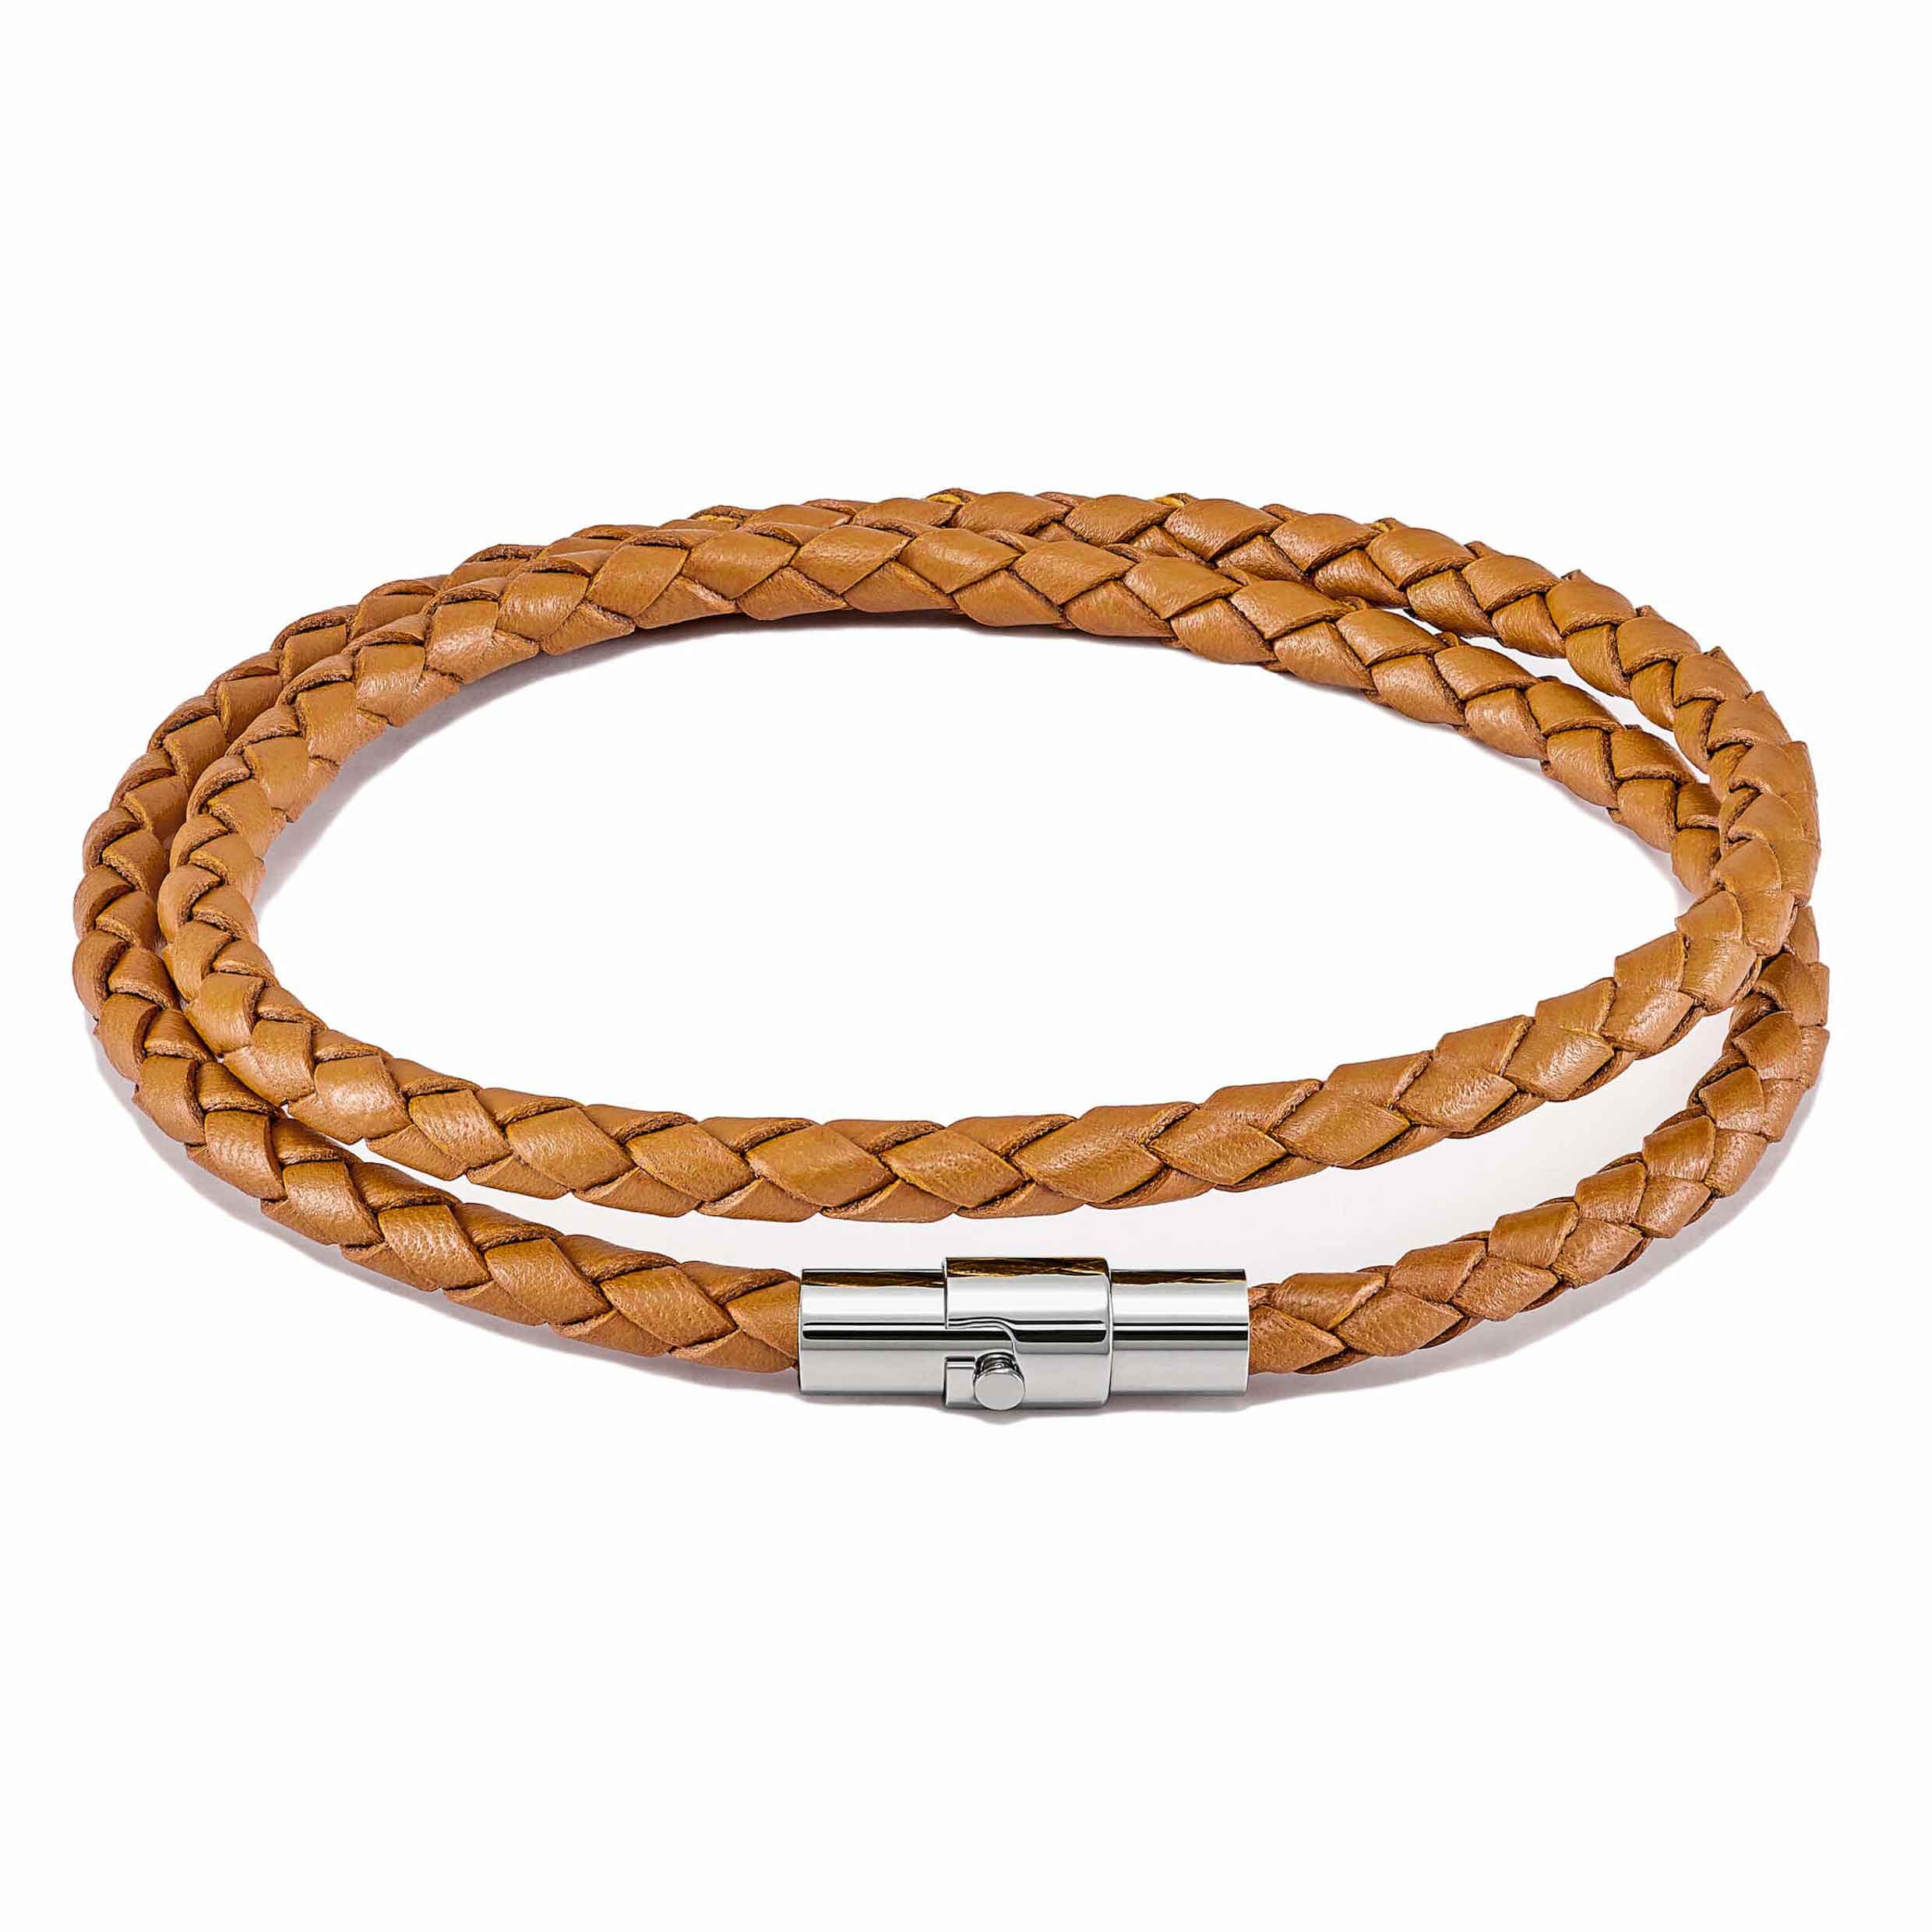 Men's Luxury Tan Croc Italian Leather Double Braided Bracelet Strap Silver Clasp